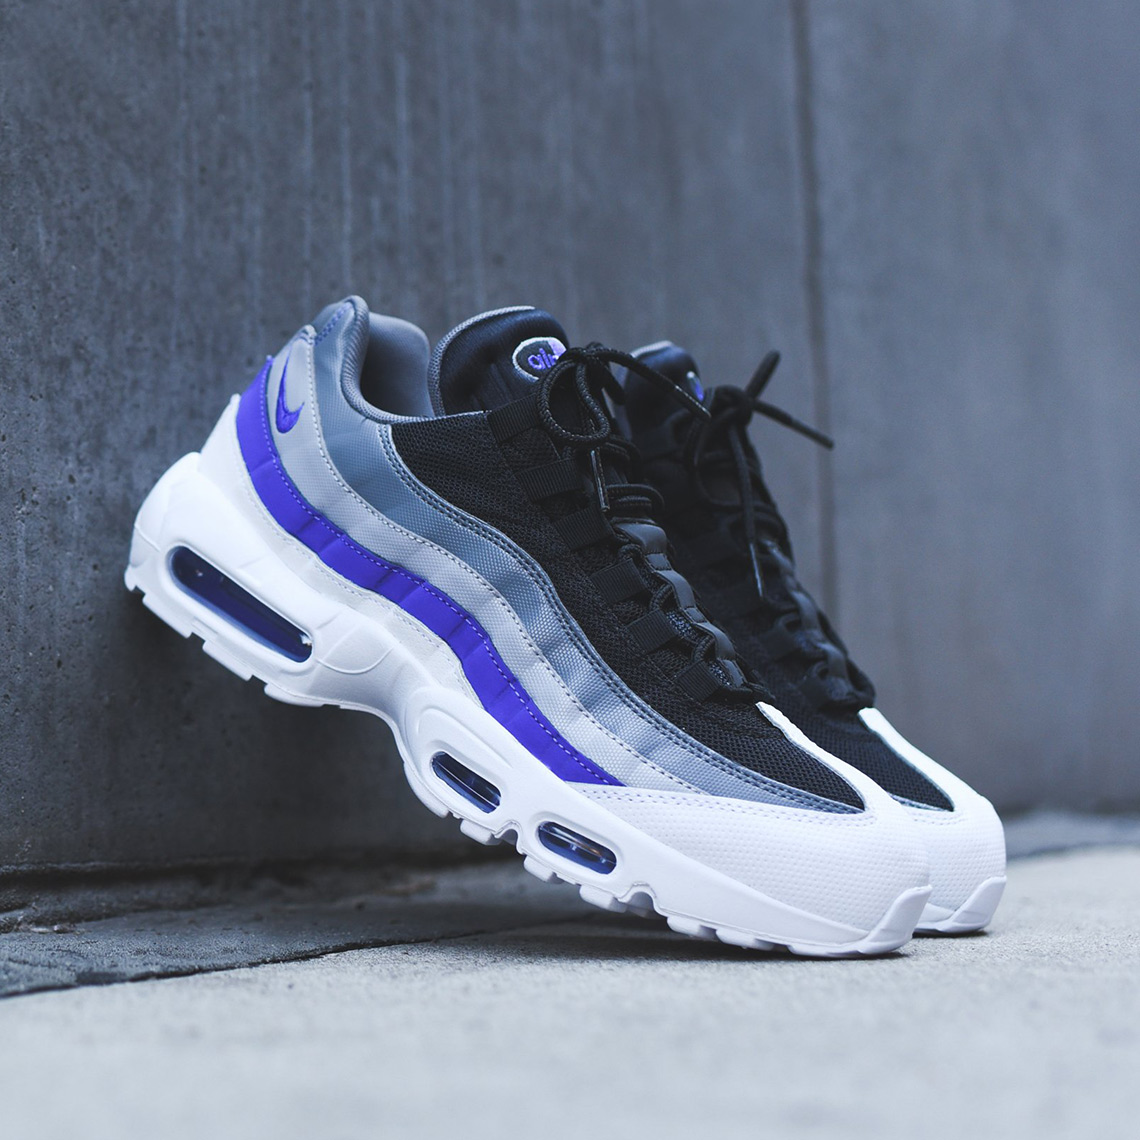 outlet store 2f5bb f86c9 Nike Air Max 95 749766-110 Buy Now   SneakerNews.com